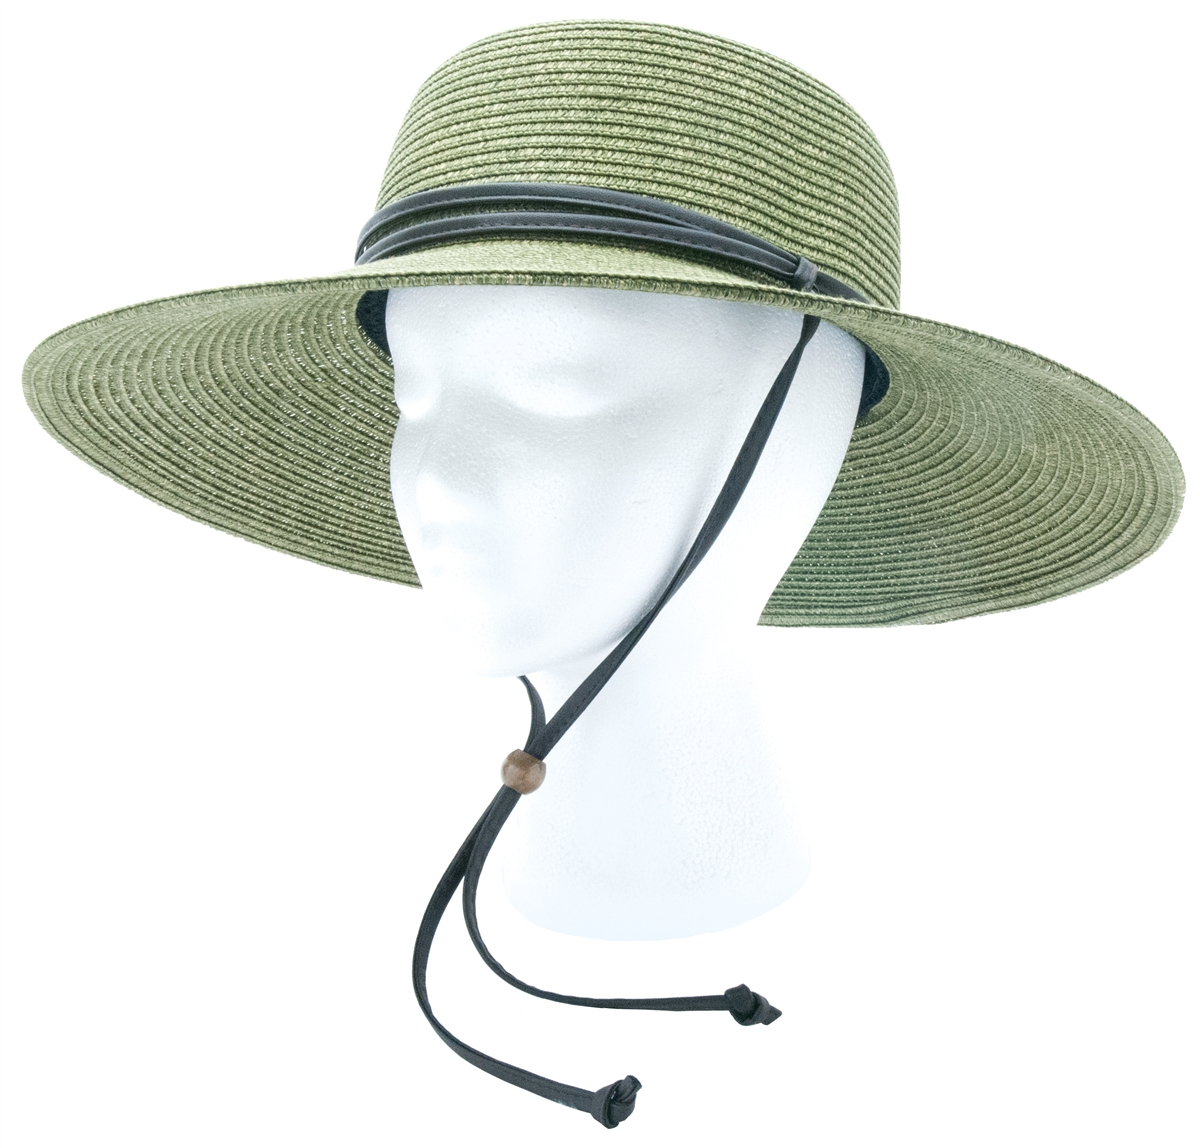 Braided hat band Green